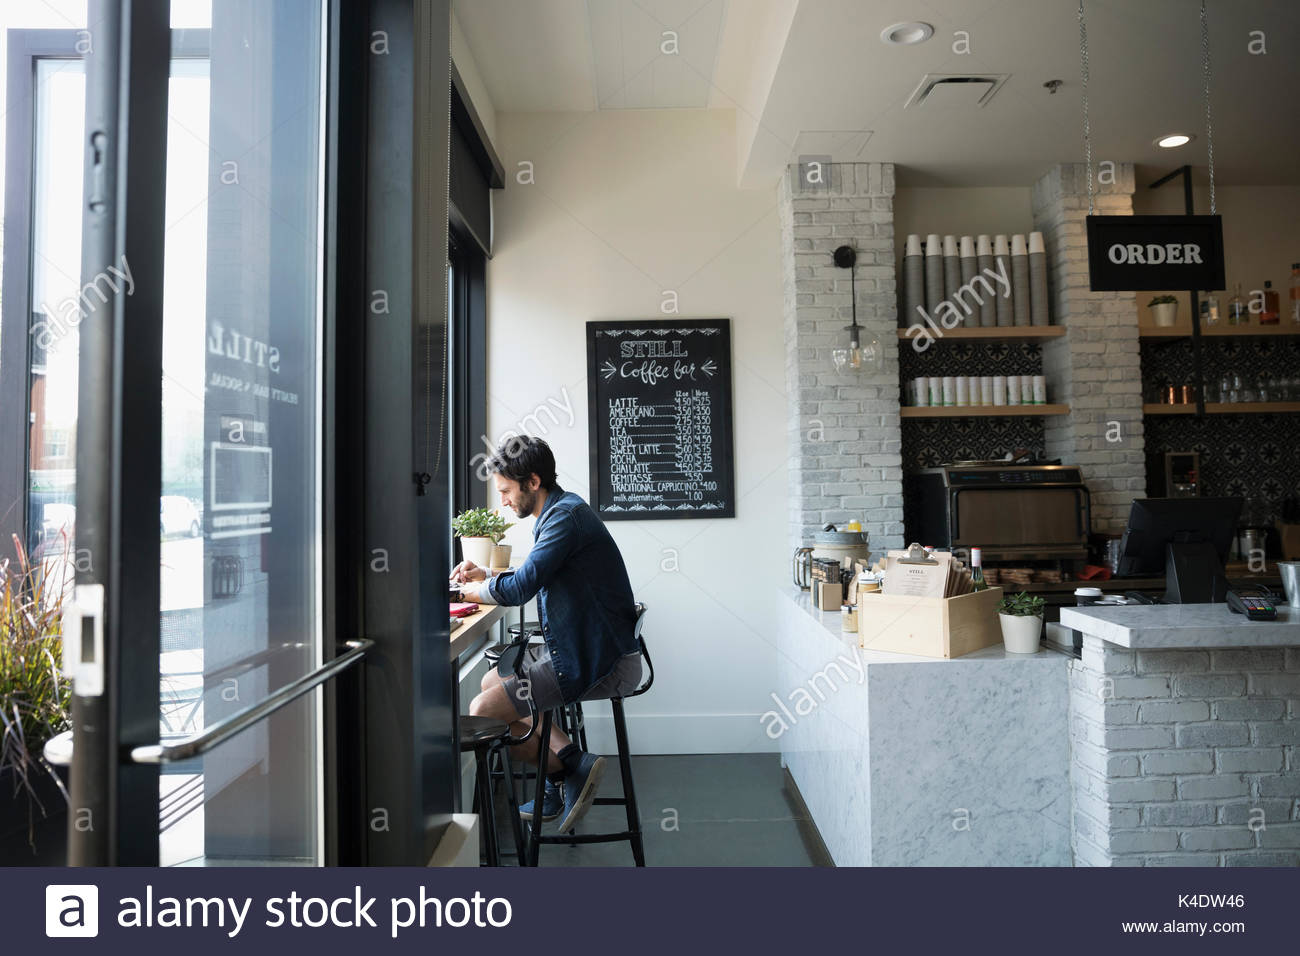 Man sitting in window at cafe - Stock Image